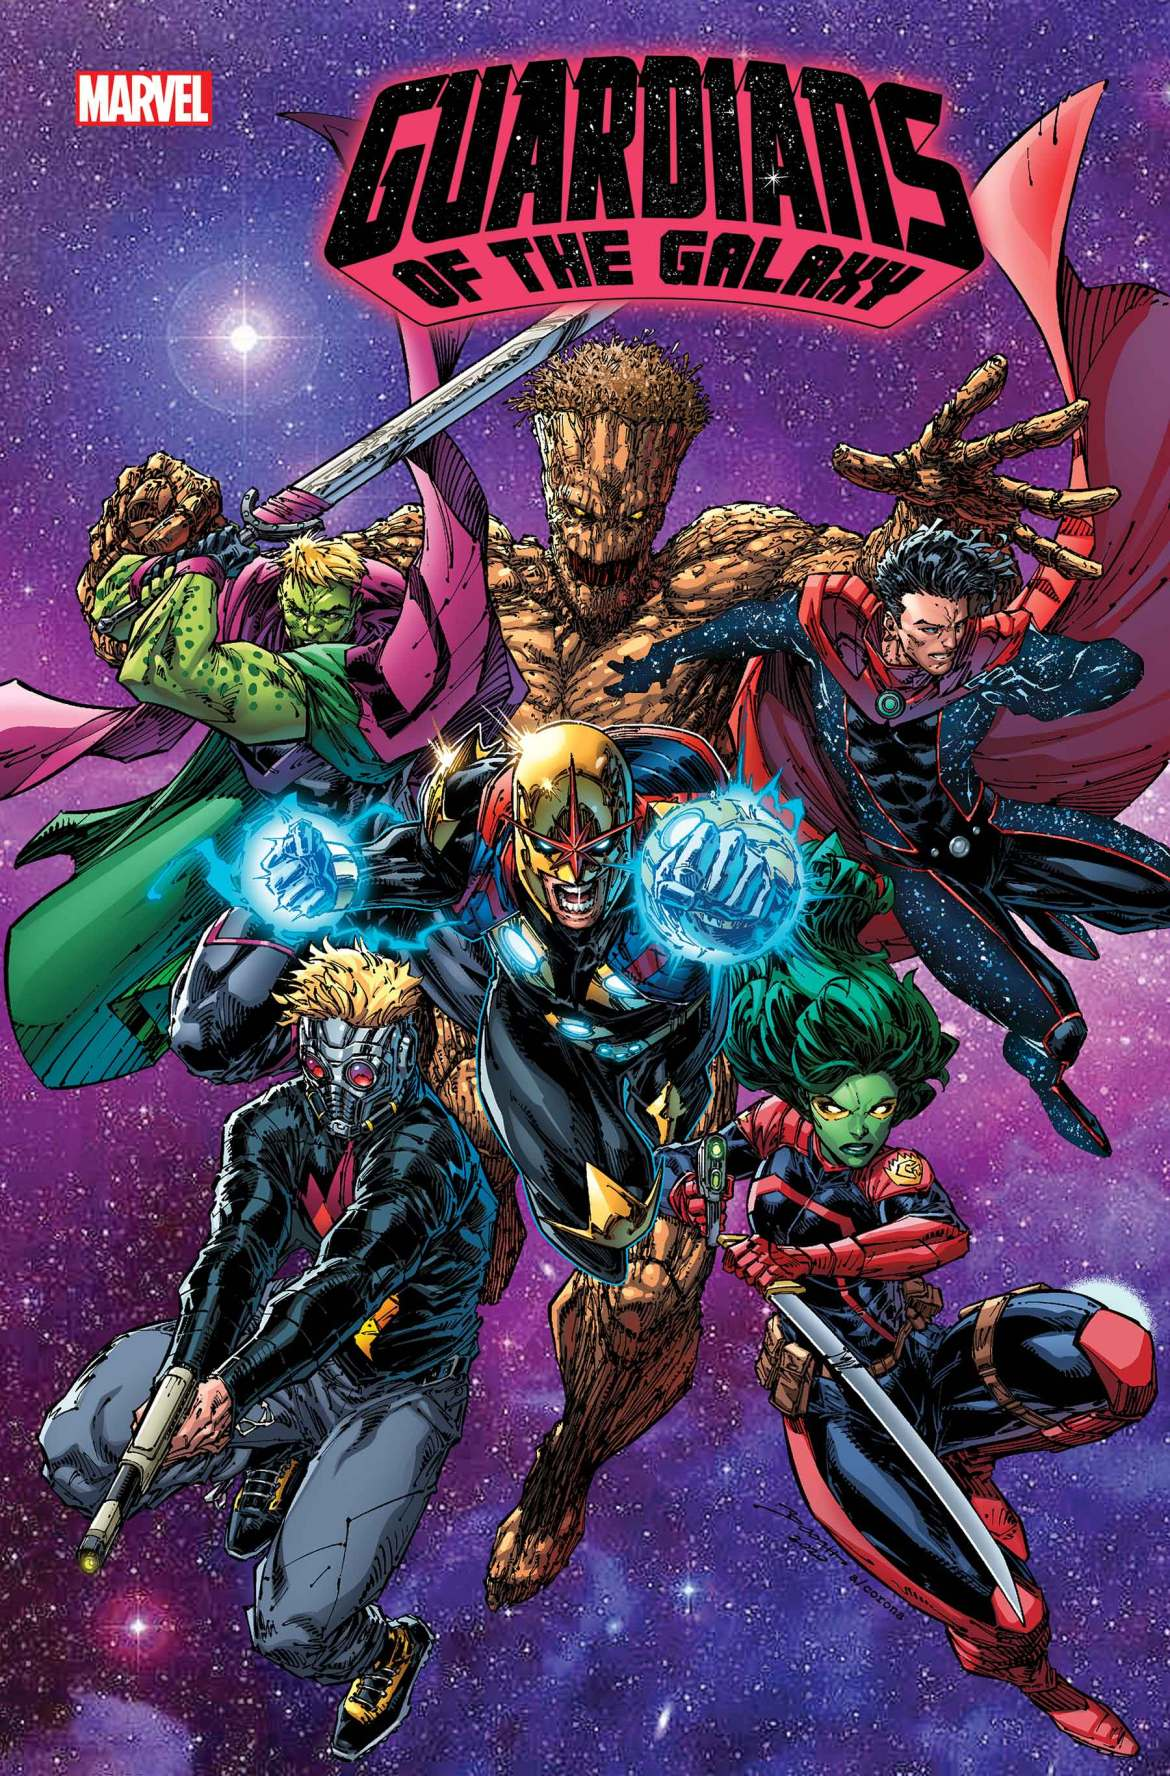 GARGAL2020013_cov-1 All-new GUARDIANS OF THE GALAXY #13 to feature multiple layers of newness